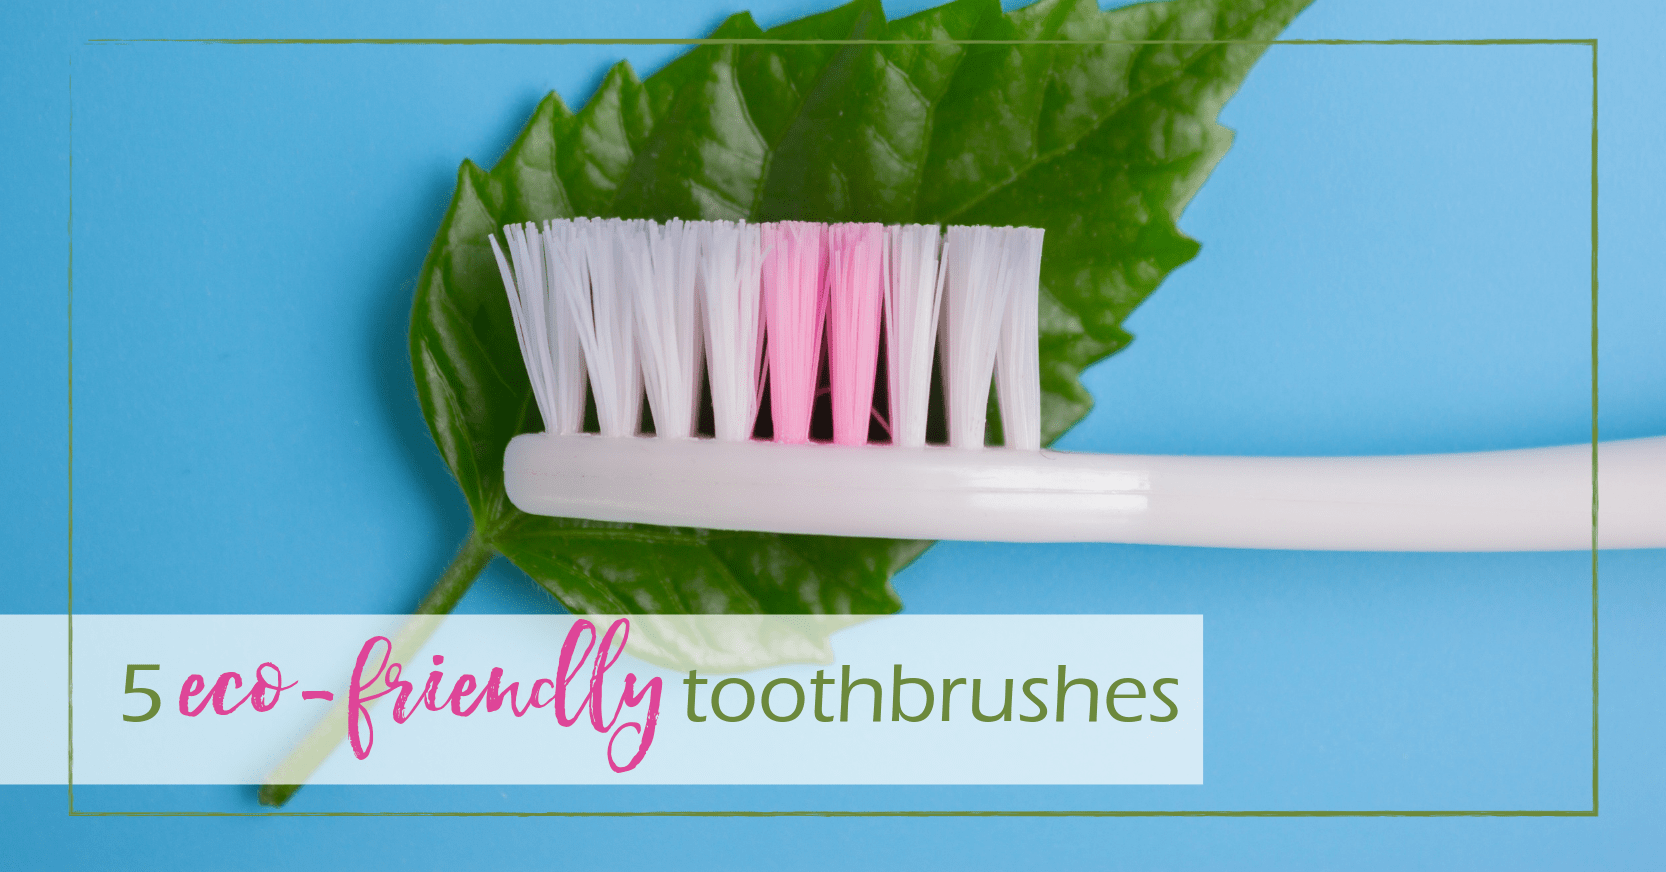 5 eco friendly toothbrushes